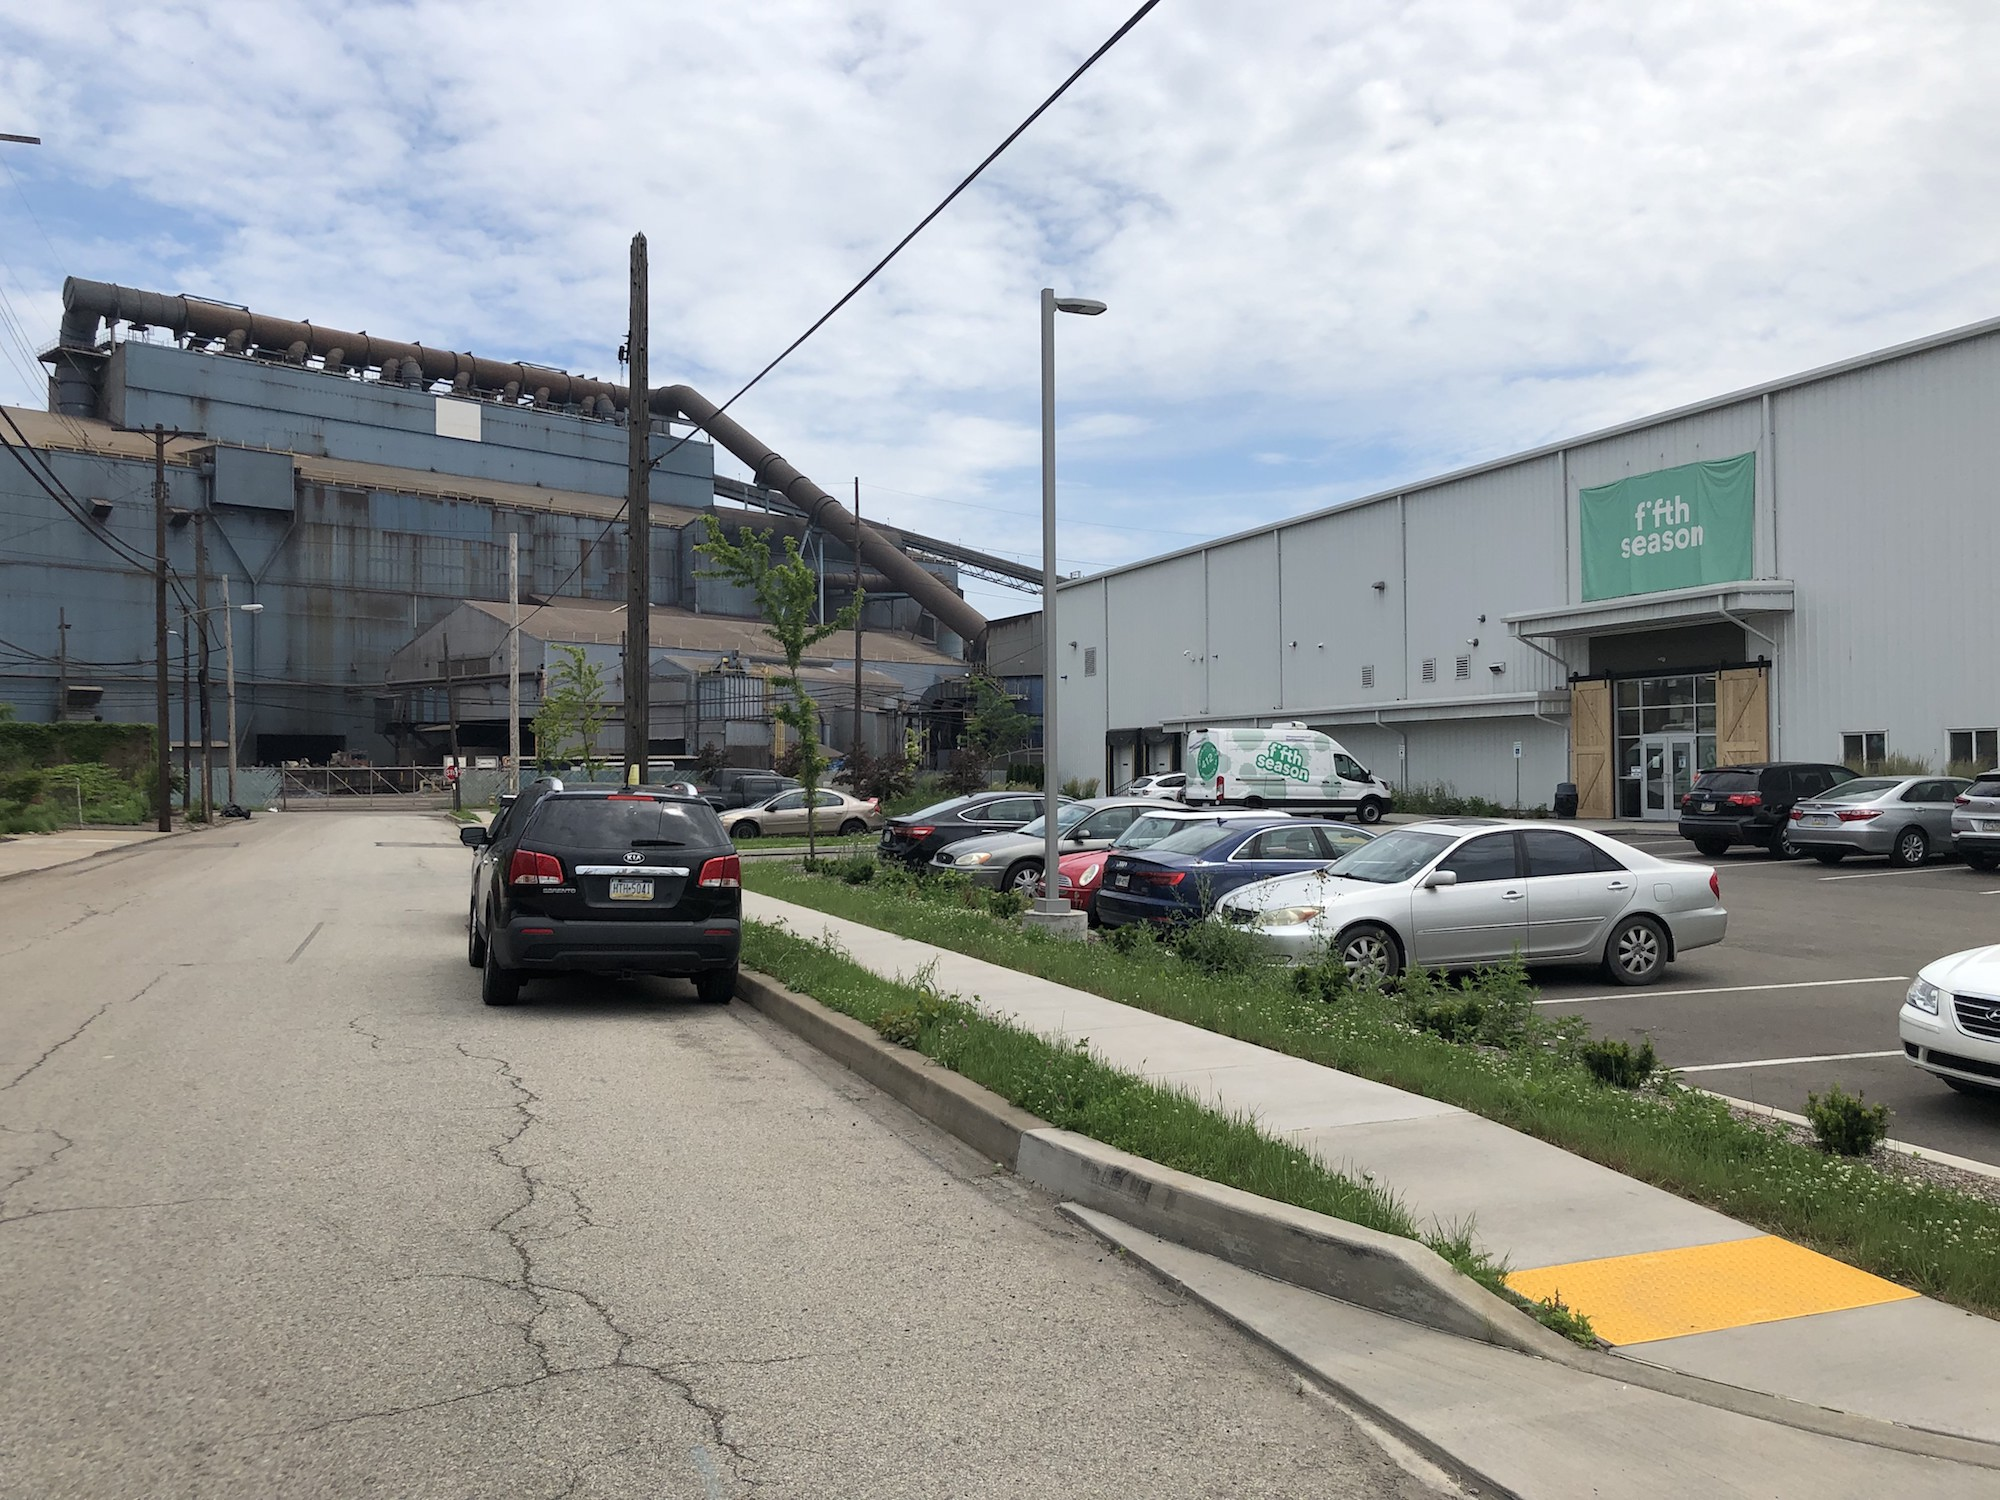 """a gray warehouse with a green sigh that says """"fifth season"""" in an industrial neighborhood"""